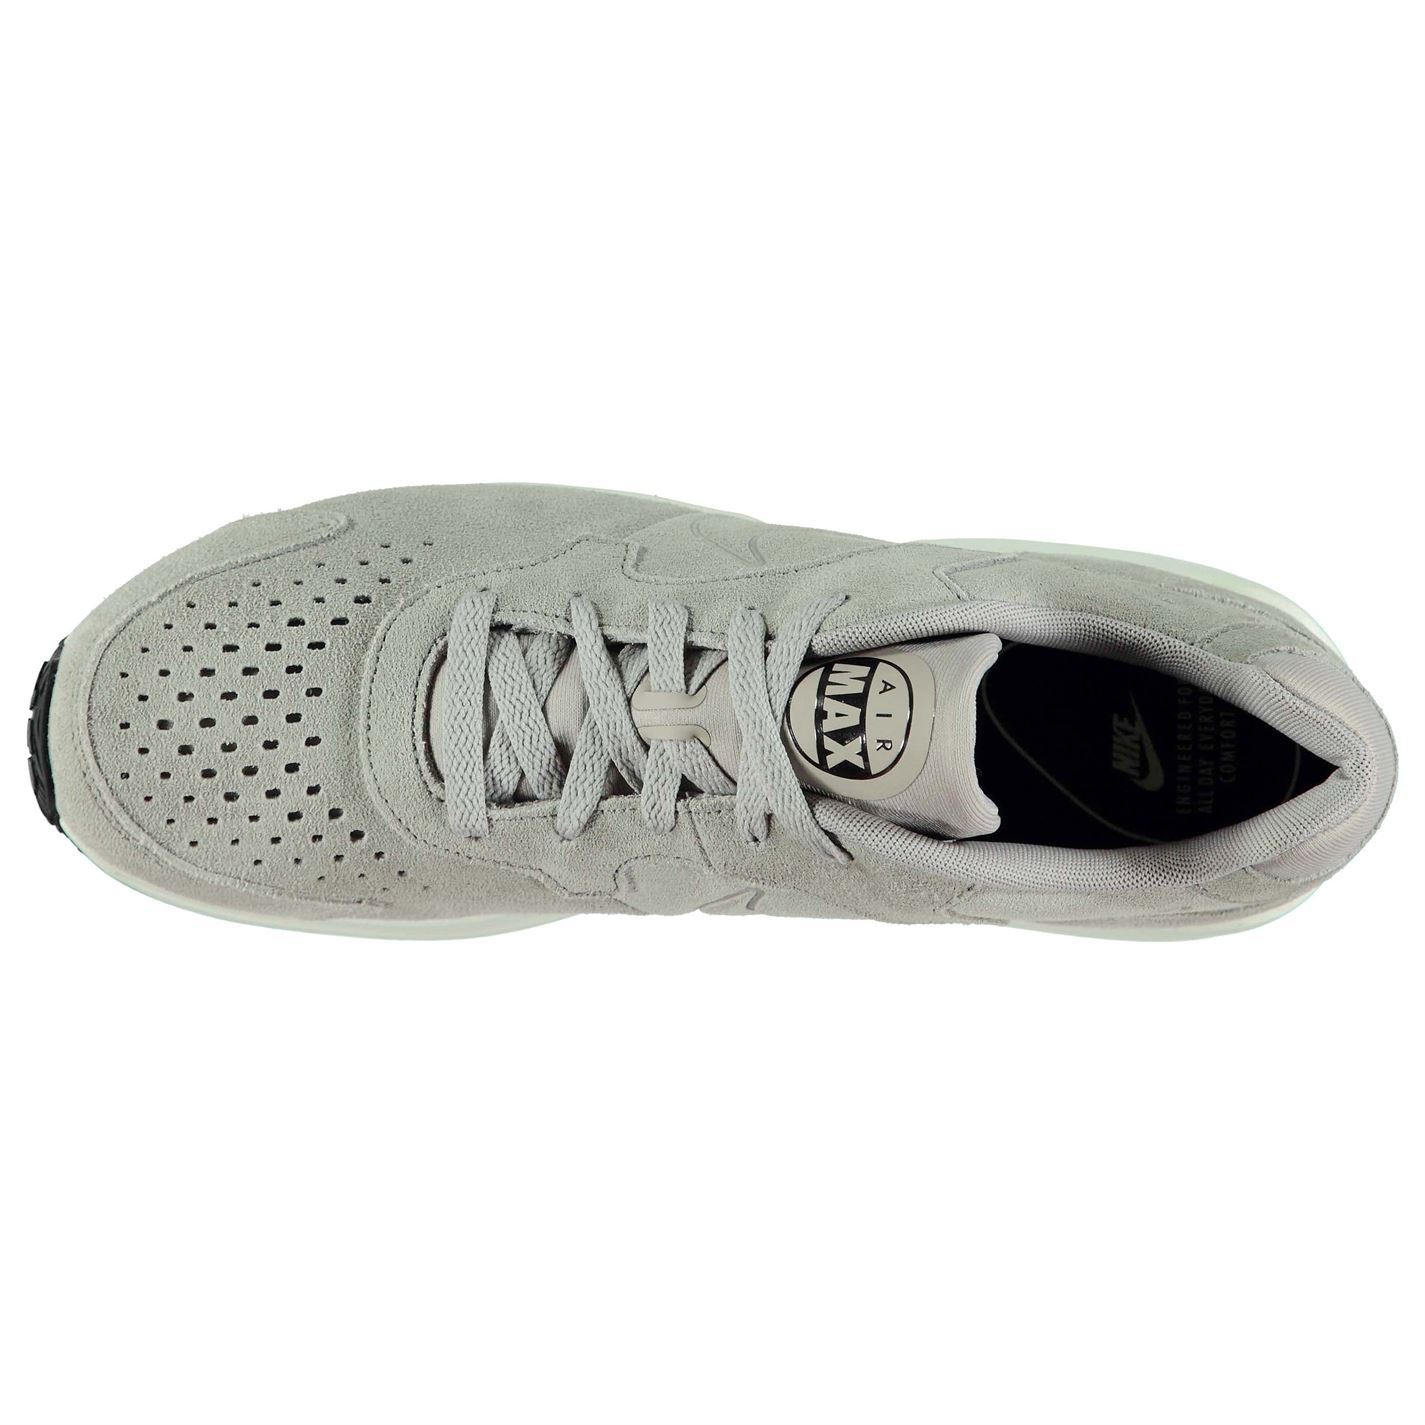 7d7500b2761d ... Nike Air Max Guile Trainers Mens Grey Athletic Sneakers Shoes